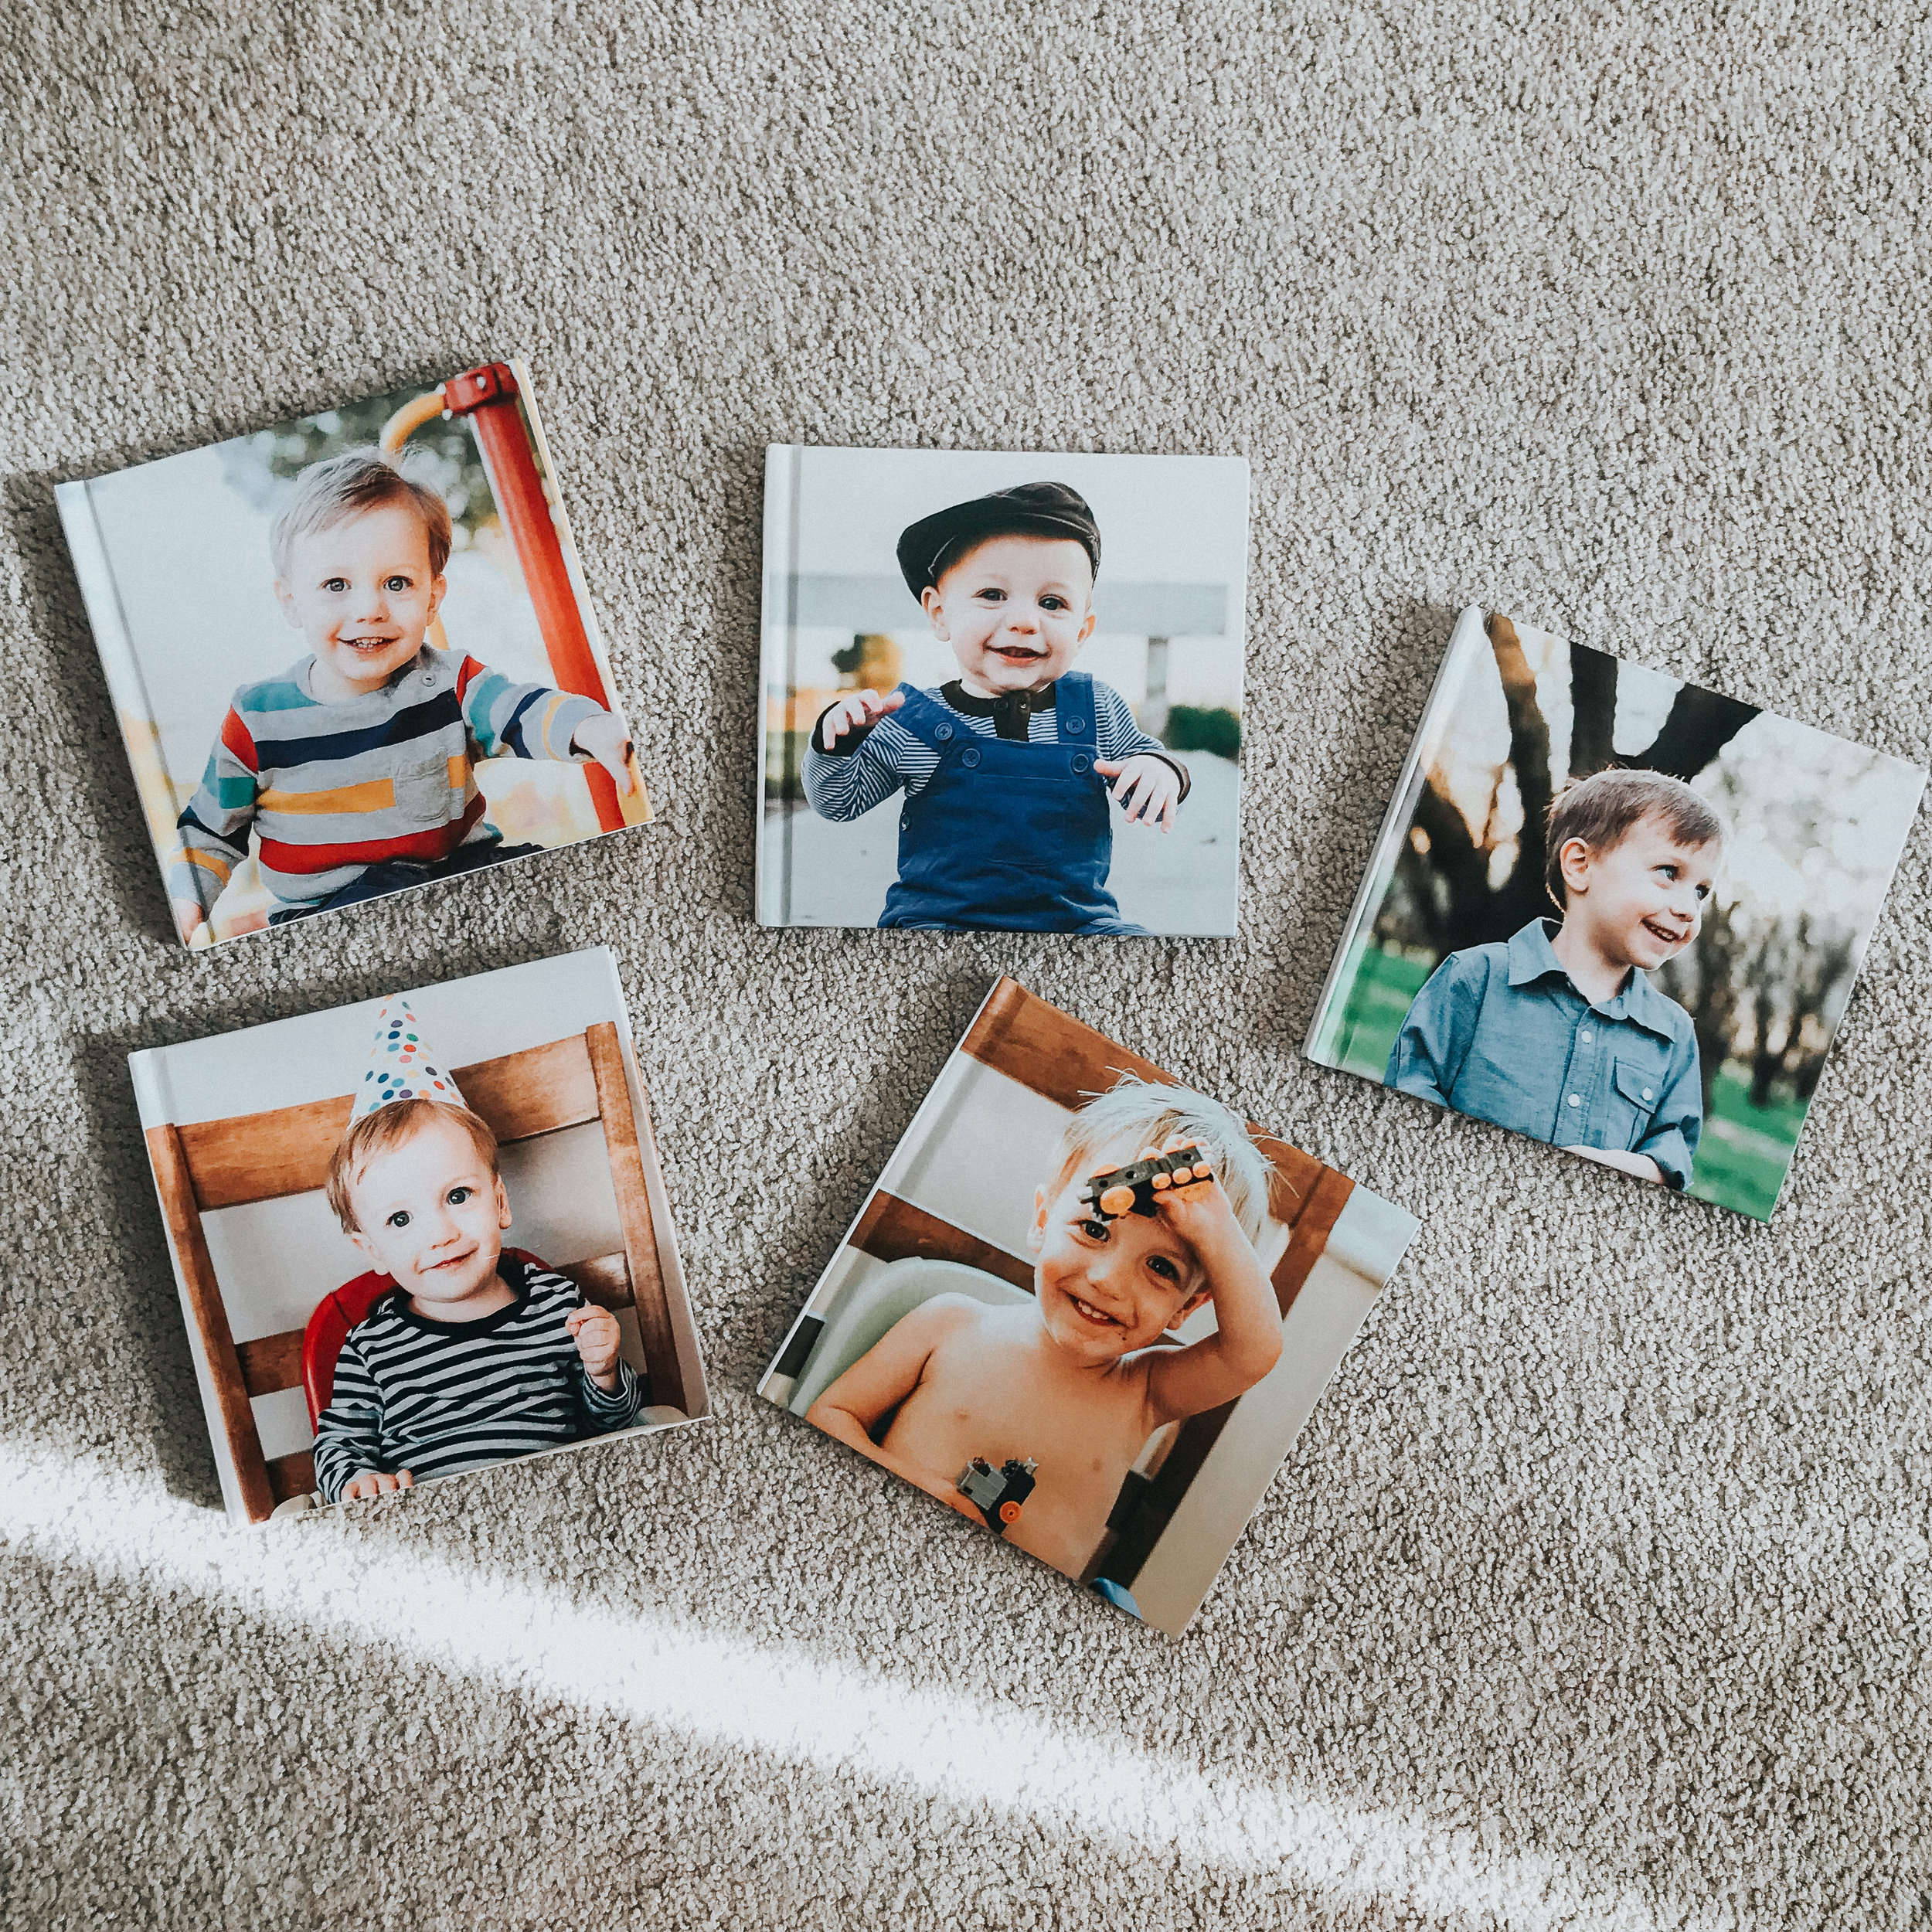 All my Blurb birthday books - I design these in Lightroom and love how they turn out. I've given these as grandparent gifts and they've always been a big hit.